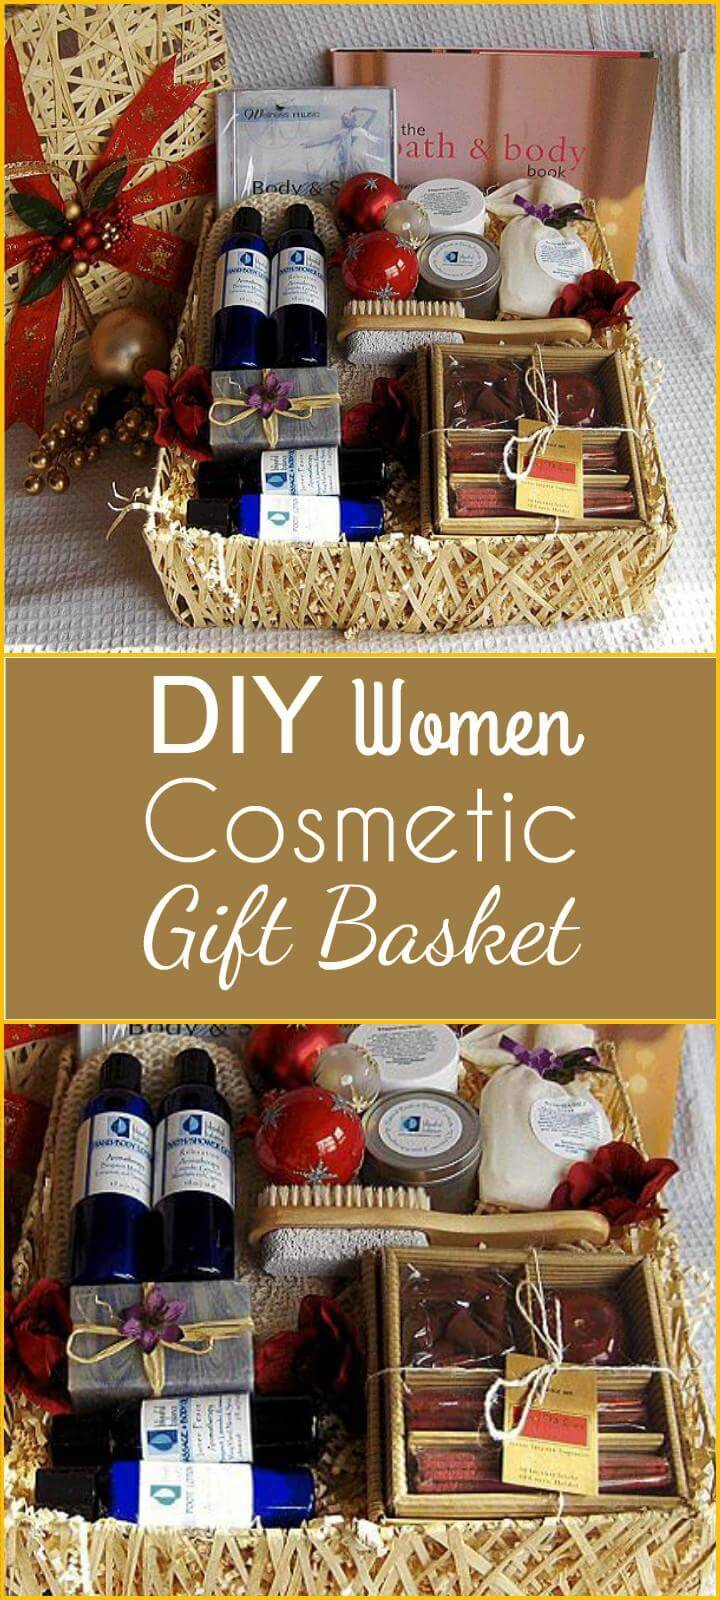 DIY women cosmetic gift basket